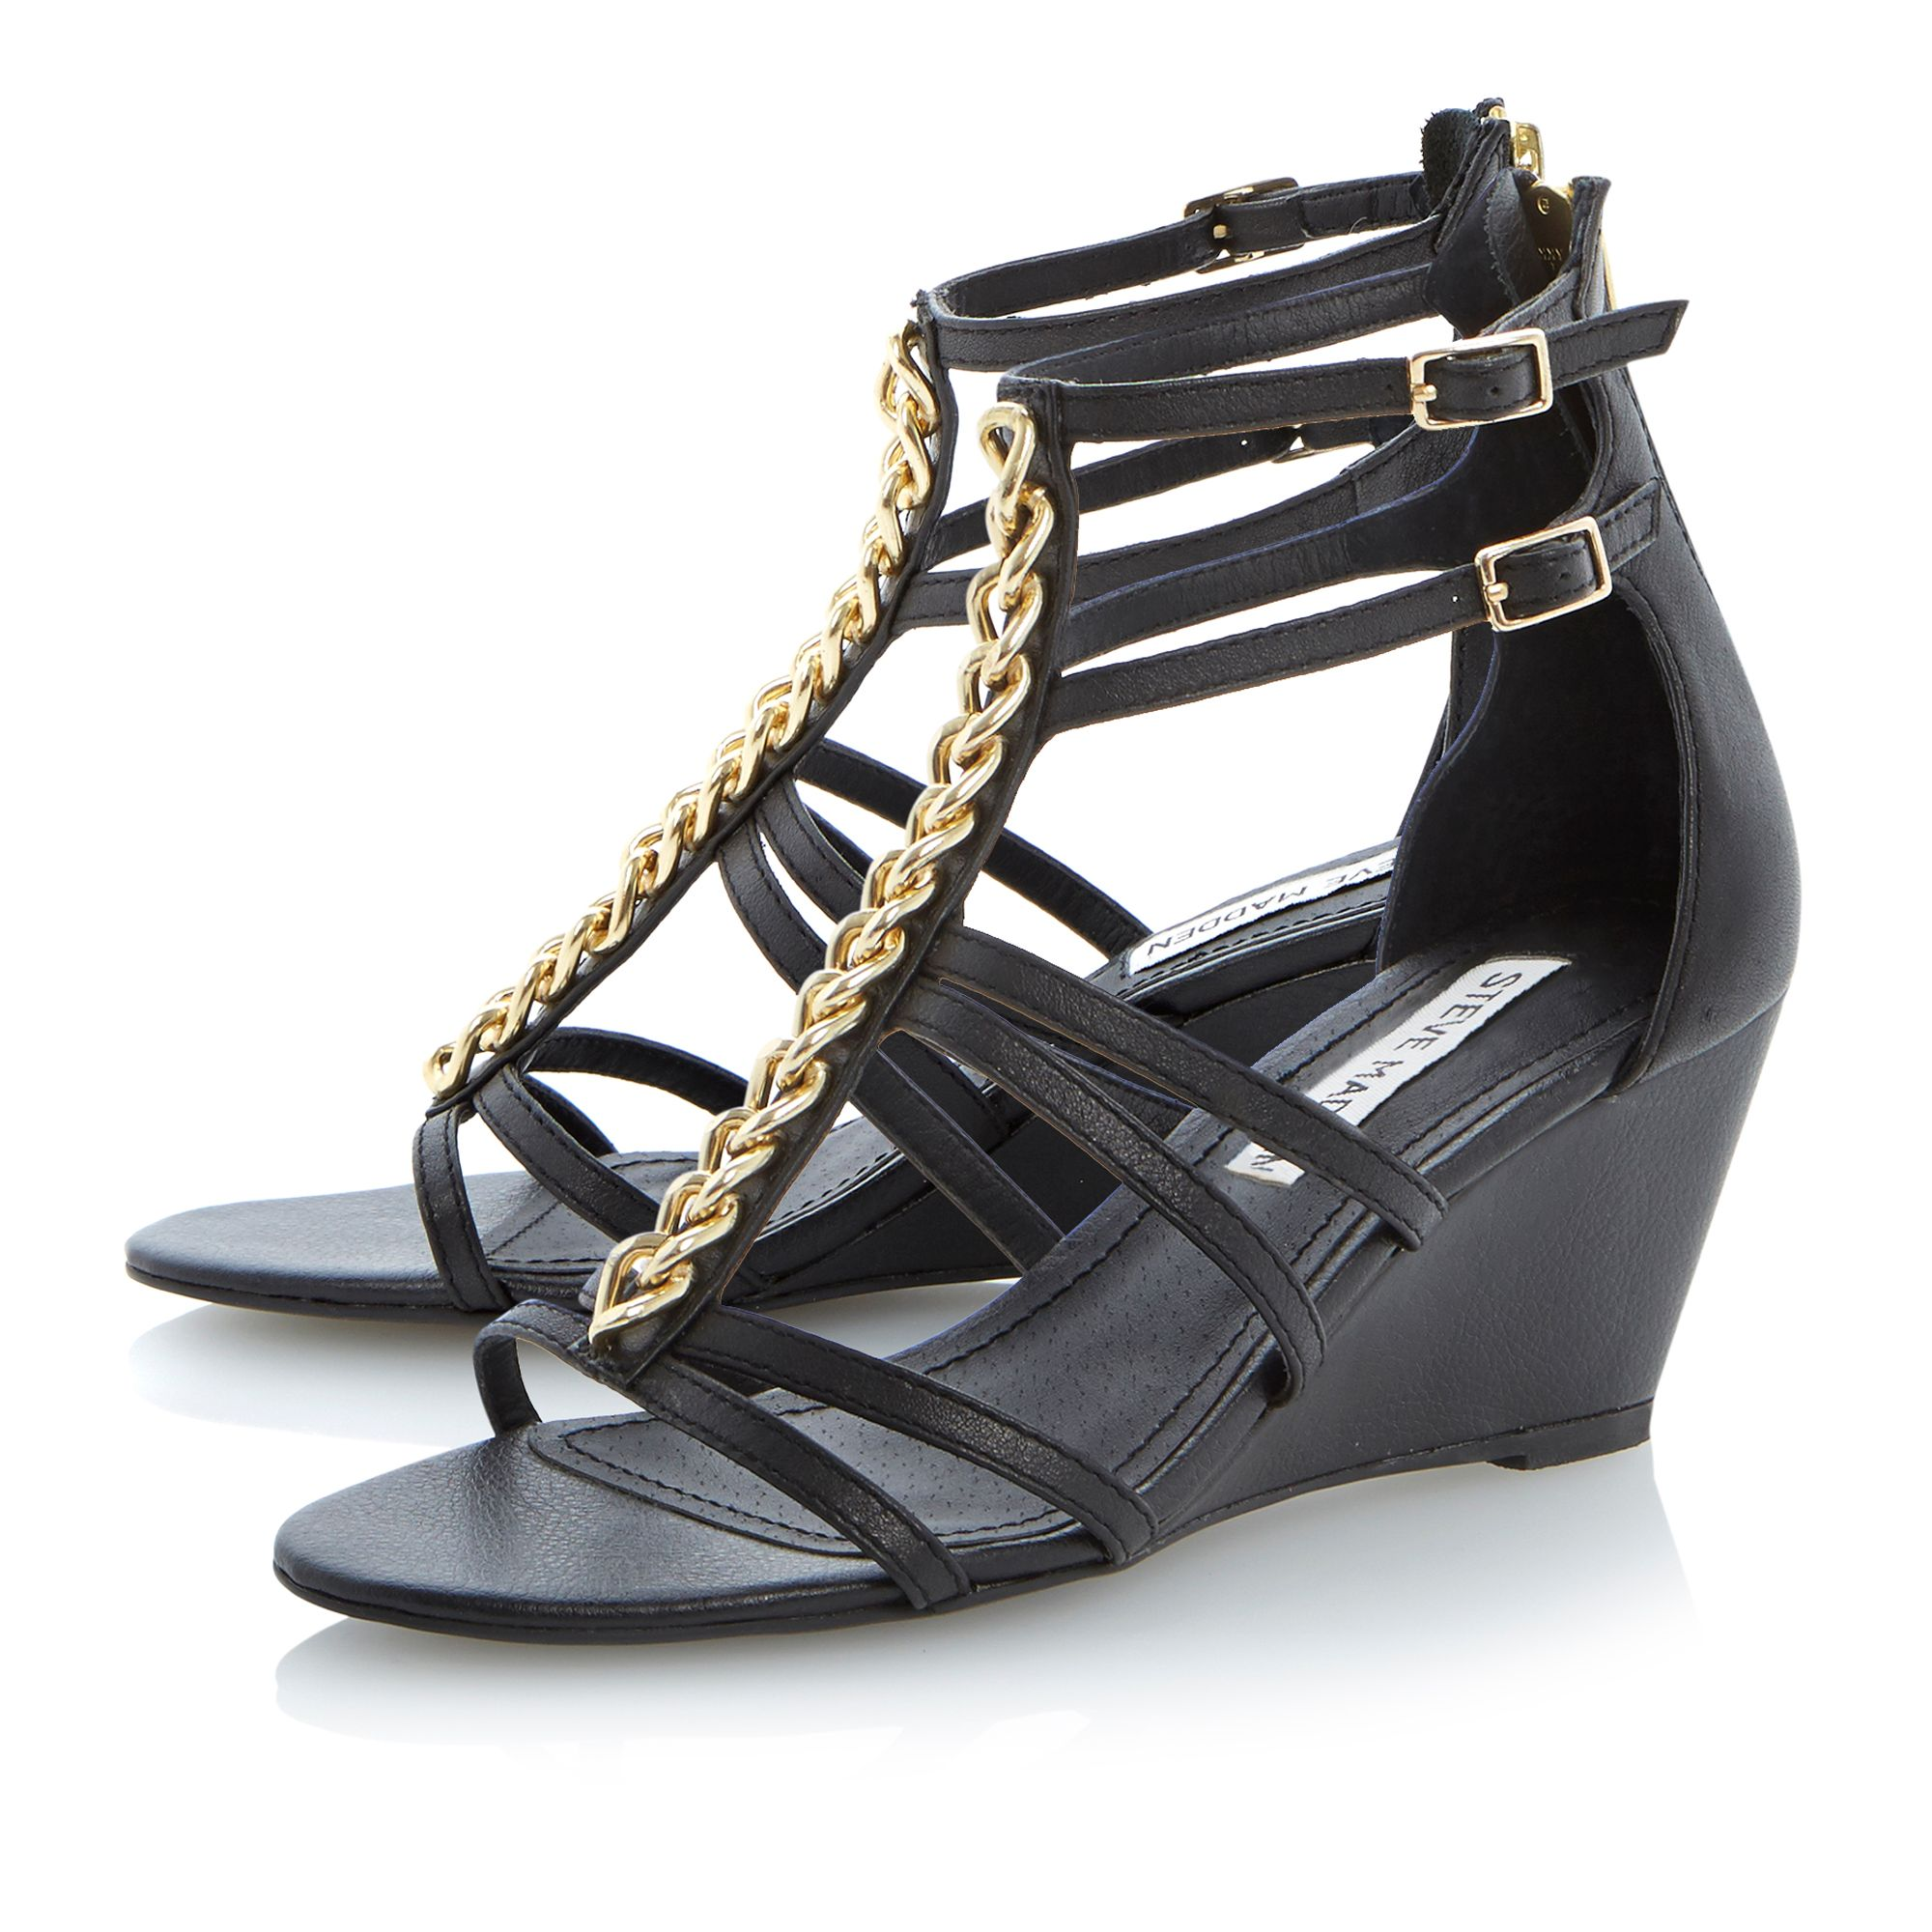 Nataly leather wedge sandals